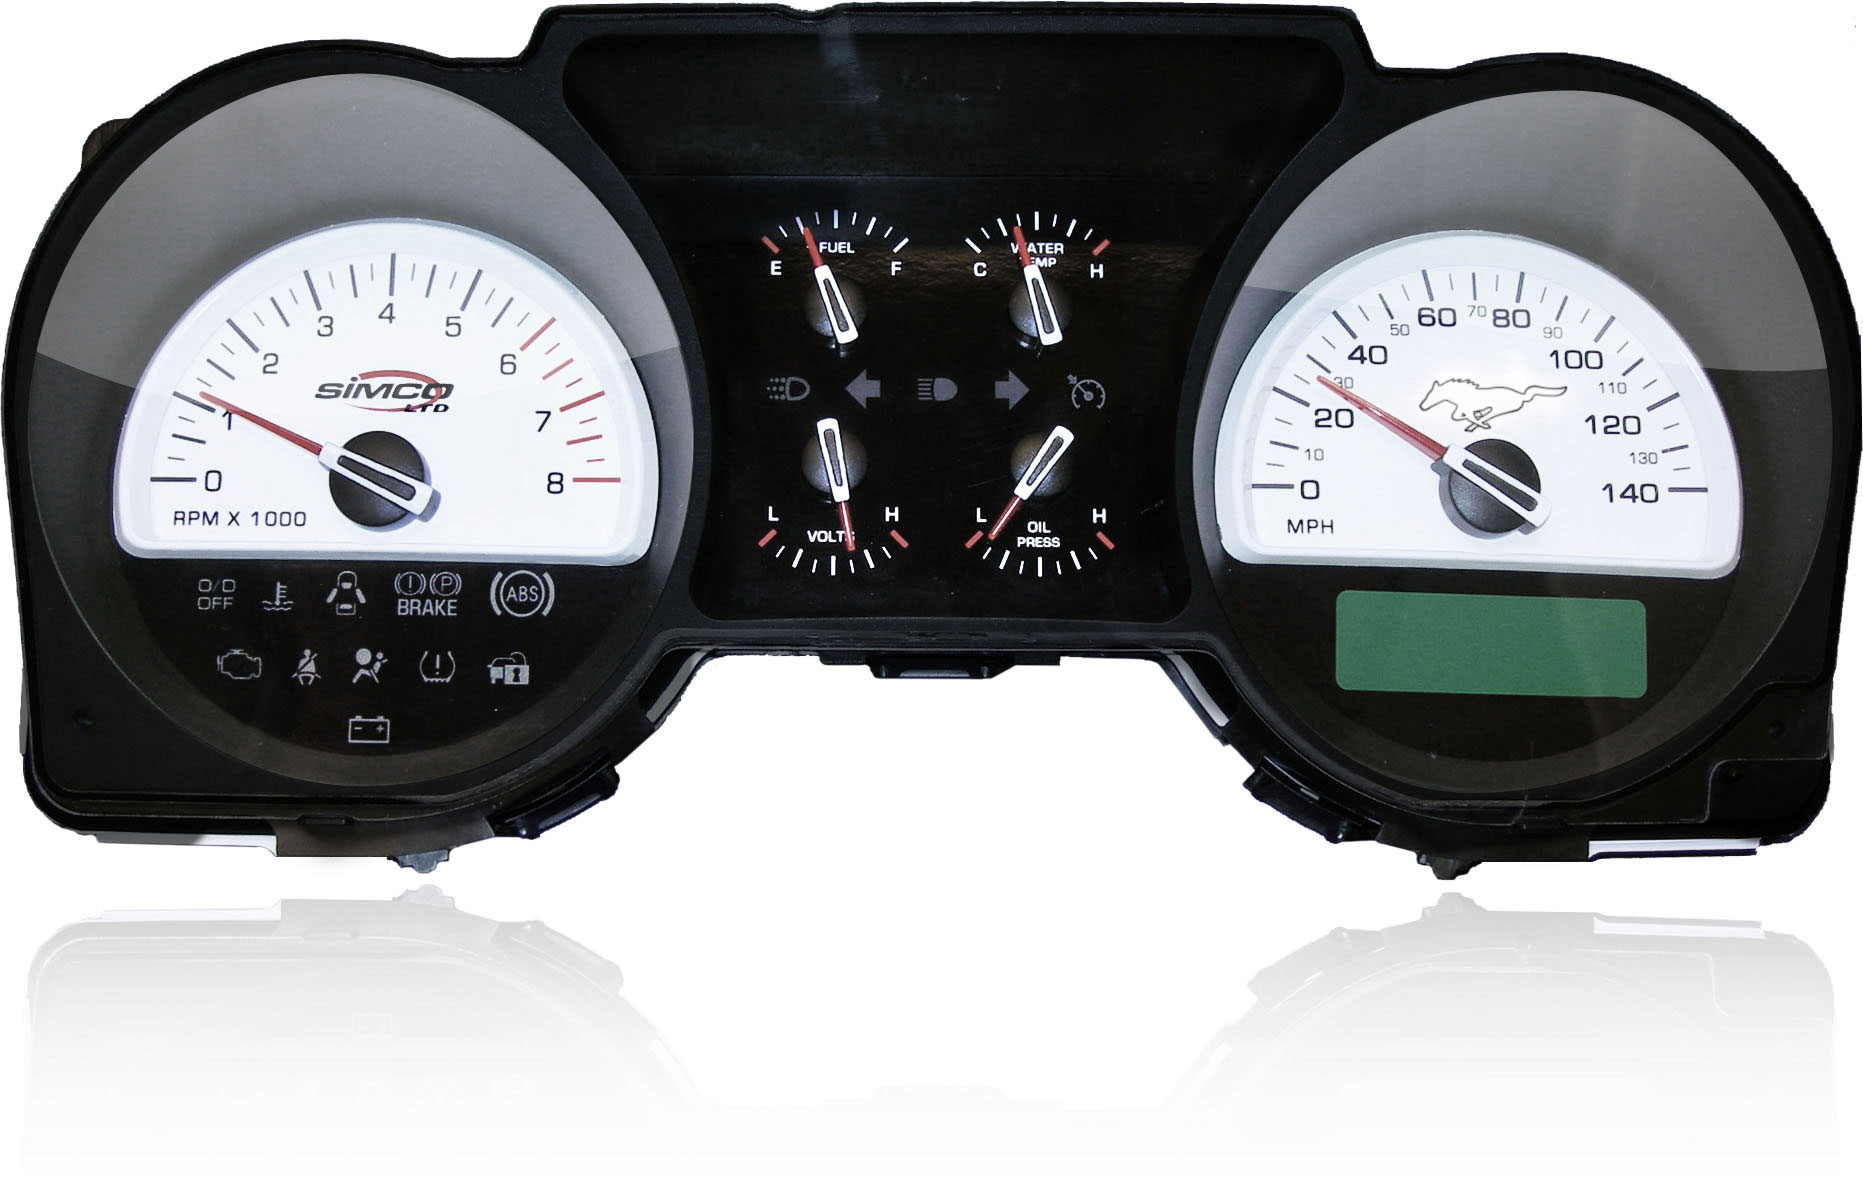 2005-2009 Simco Mustang GT - 6 GAUGE SILVER SERIES COLOR